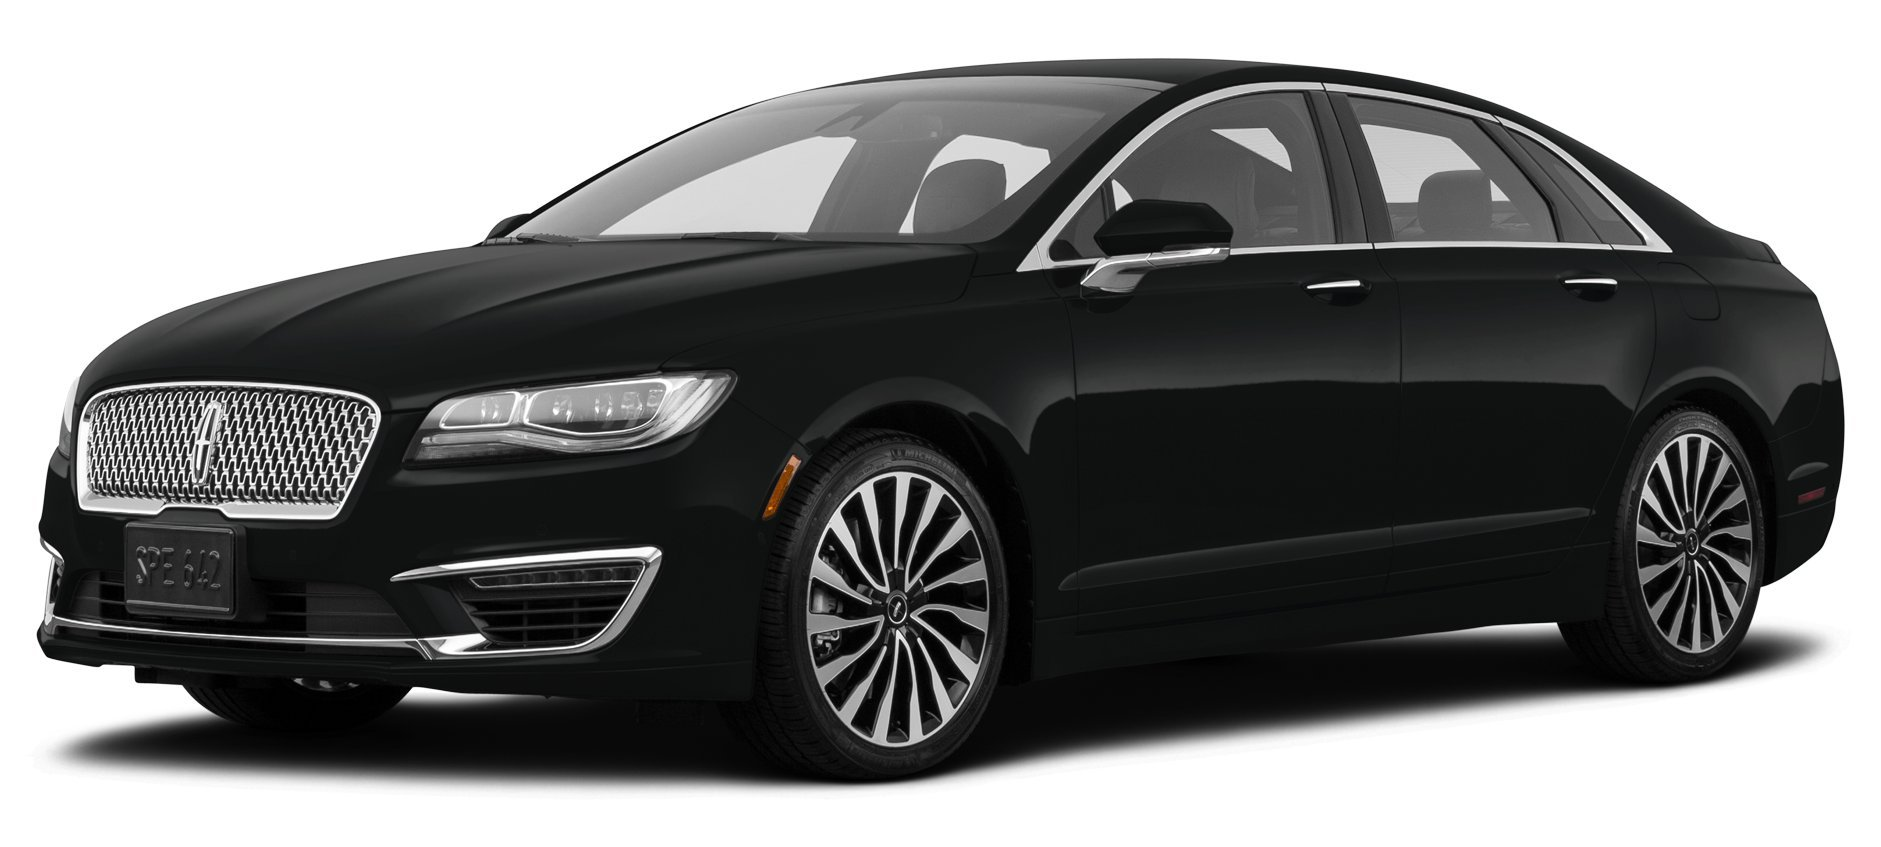 amazon com  2018 lincoln mkz reviews  images  and specs  vehicles